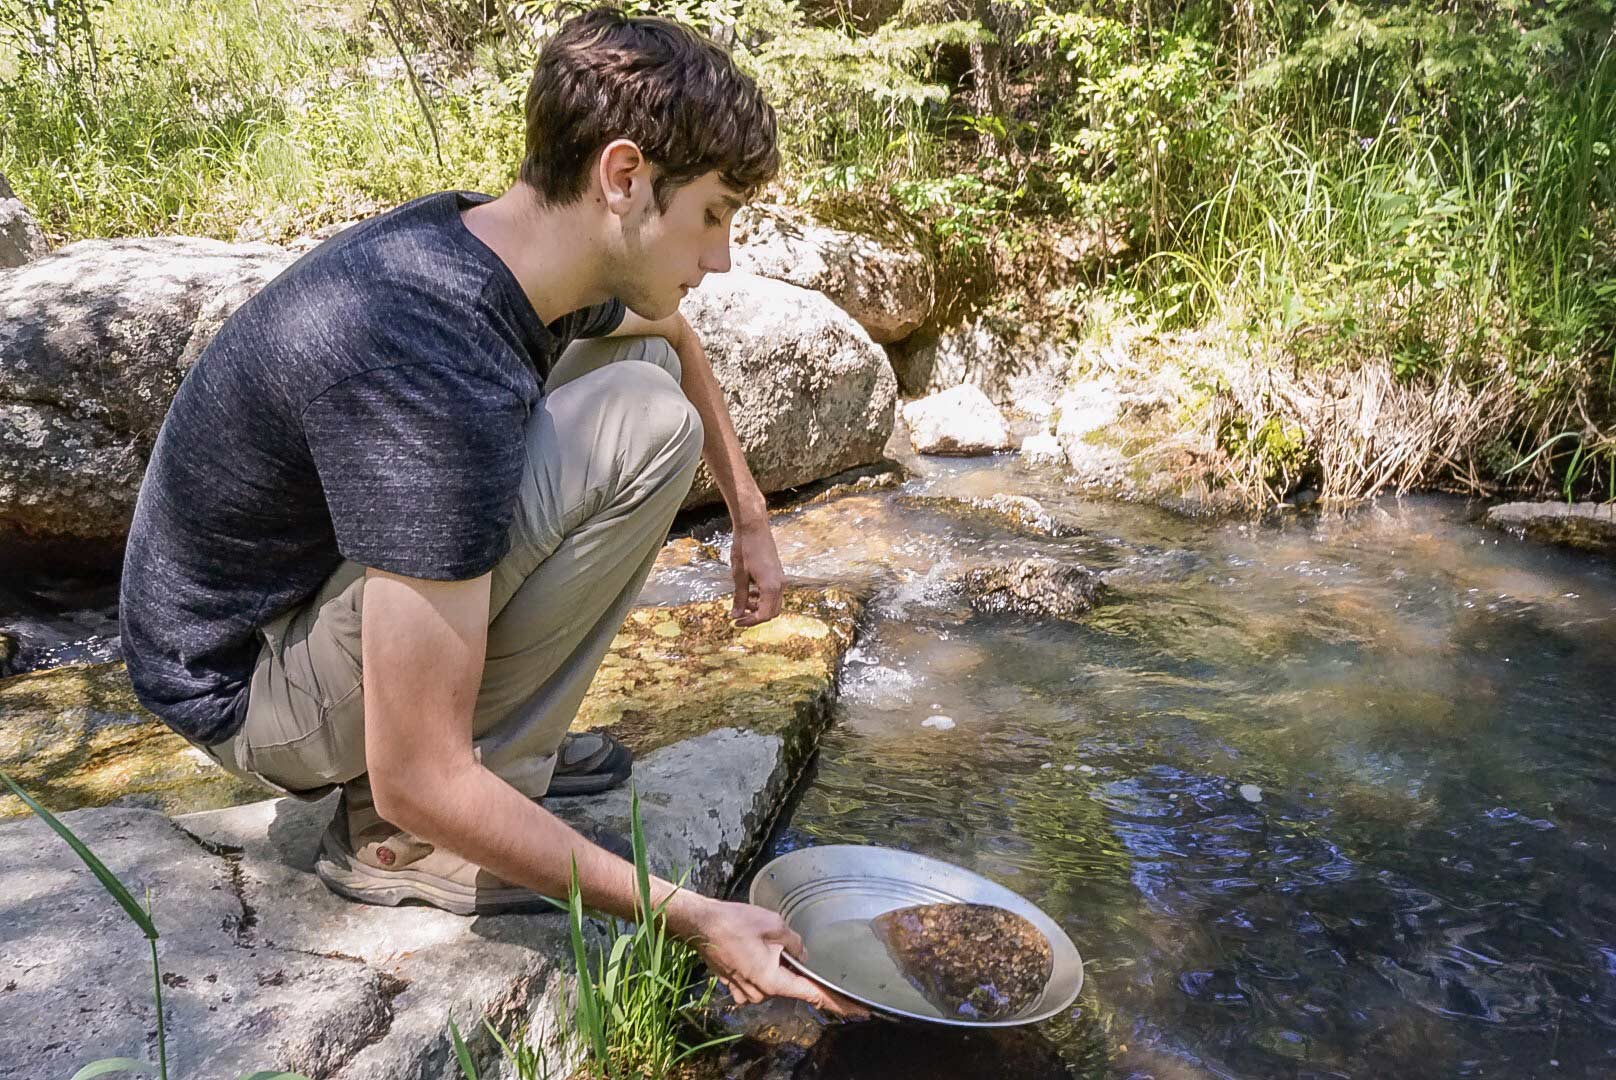 gold panning a stream in coloradoby @camera7088